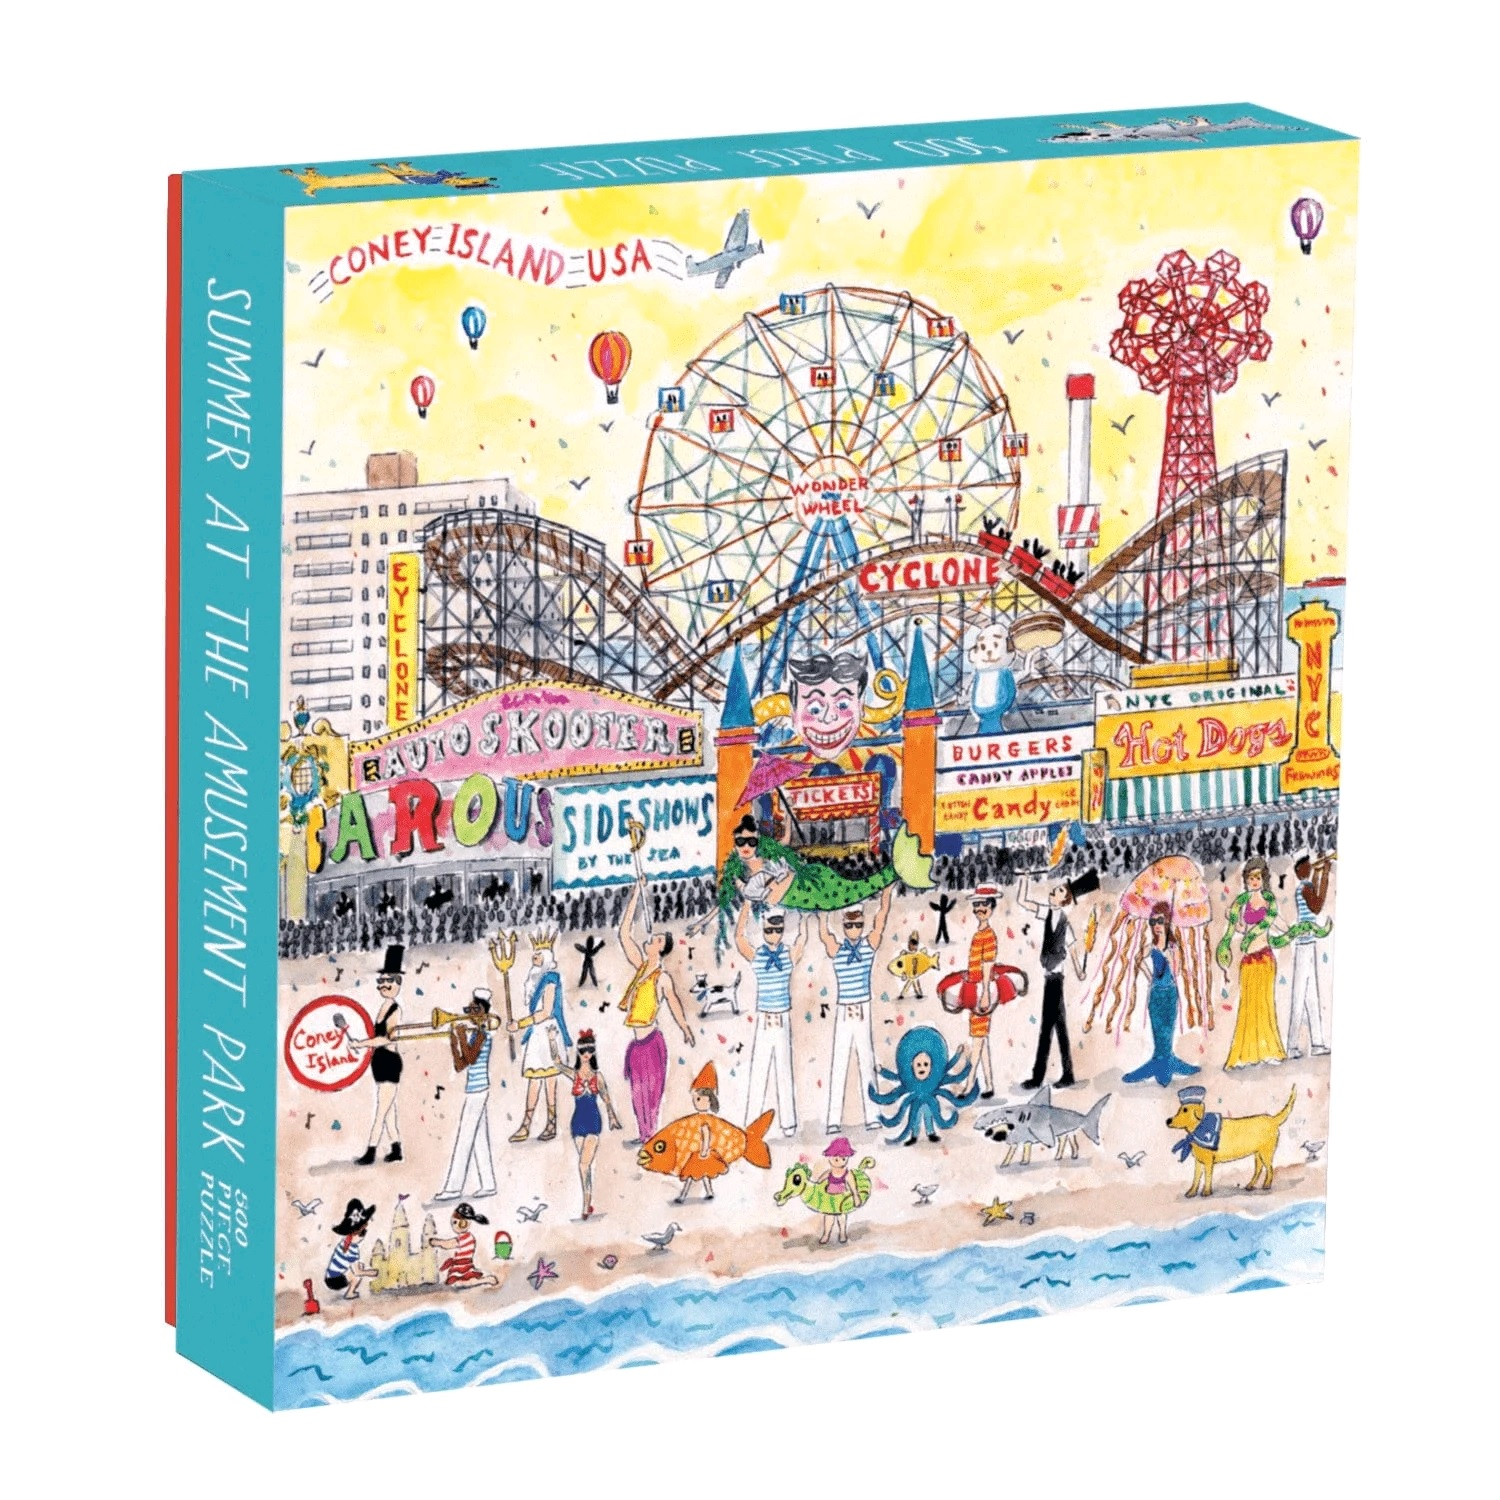 Michael Storrings Summer at the amusement Park 500 Piece Puzzle by Galison